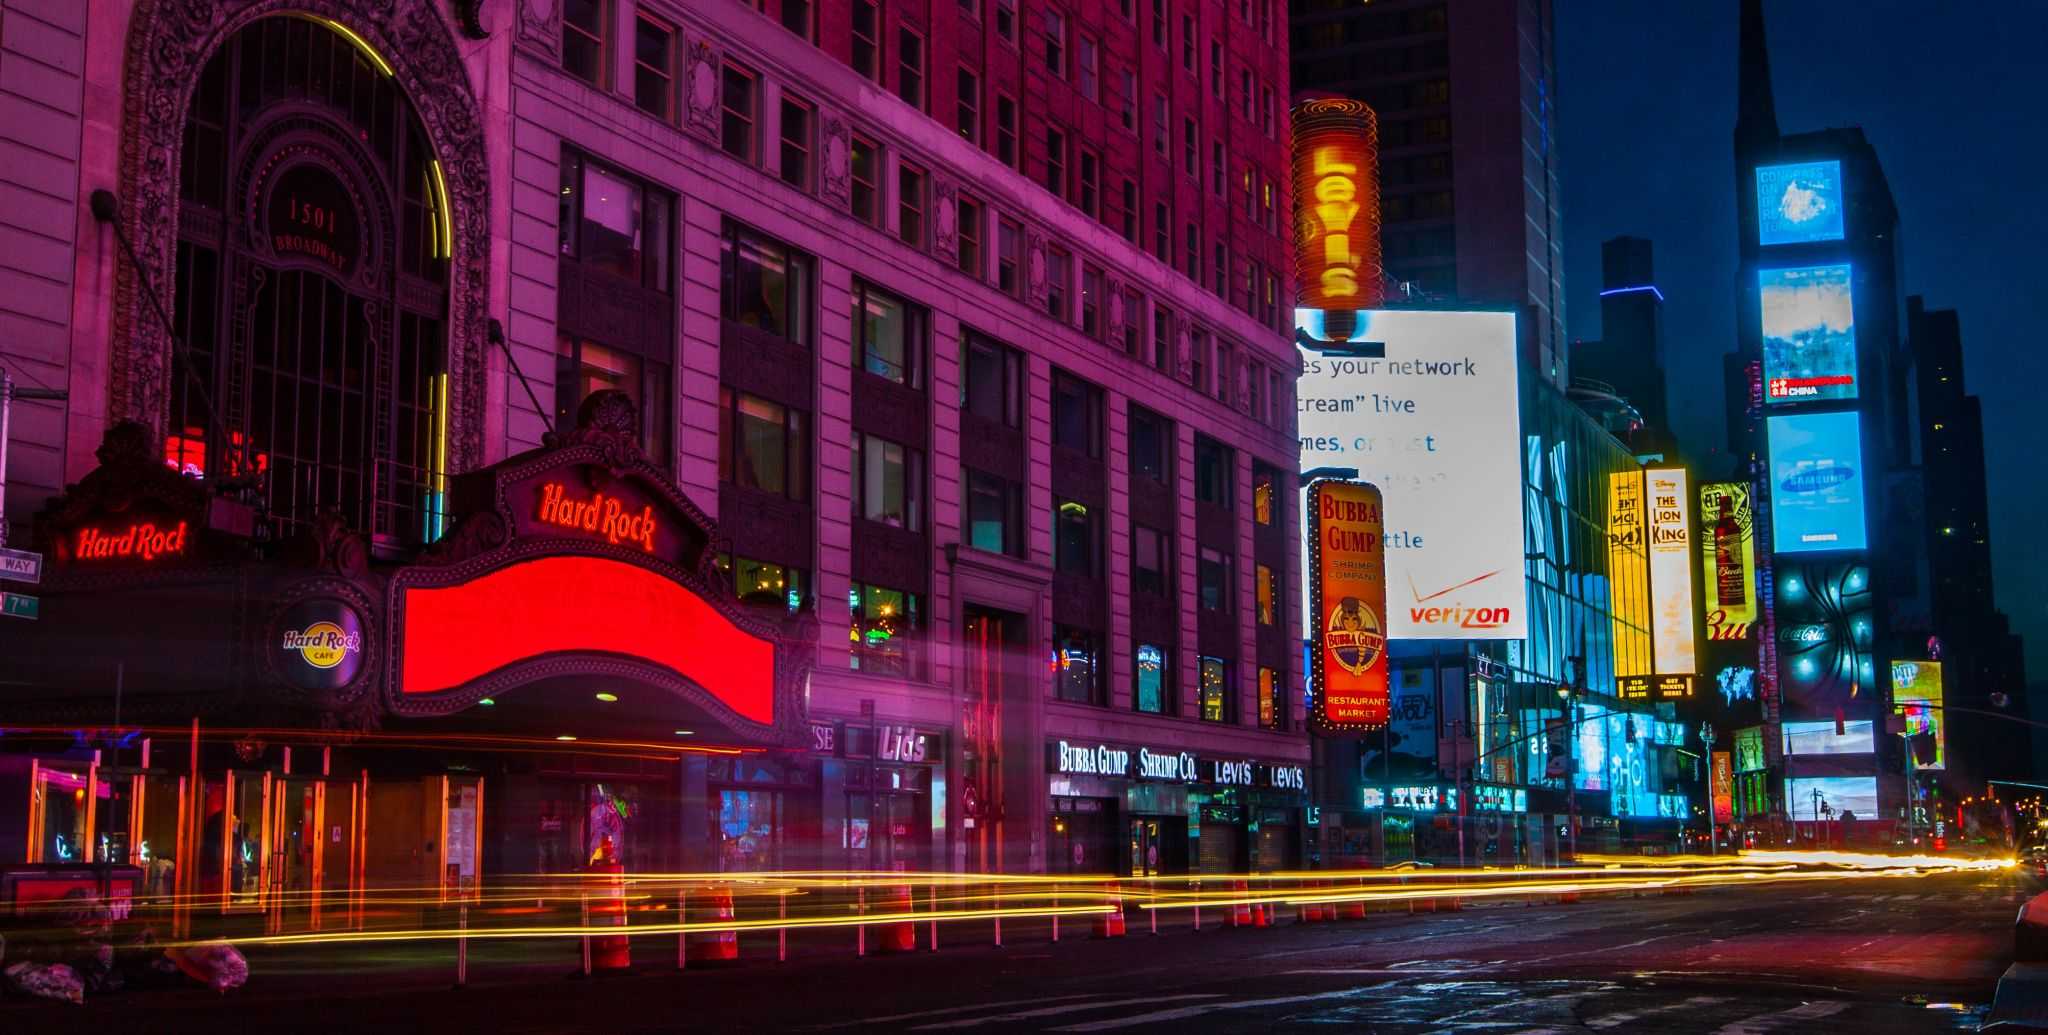 Times Square Hard Rock Cafe Bluehour NYC, USA